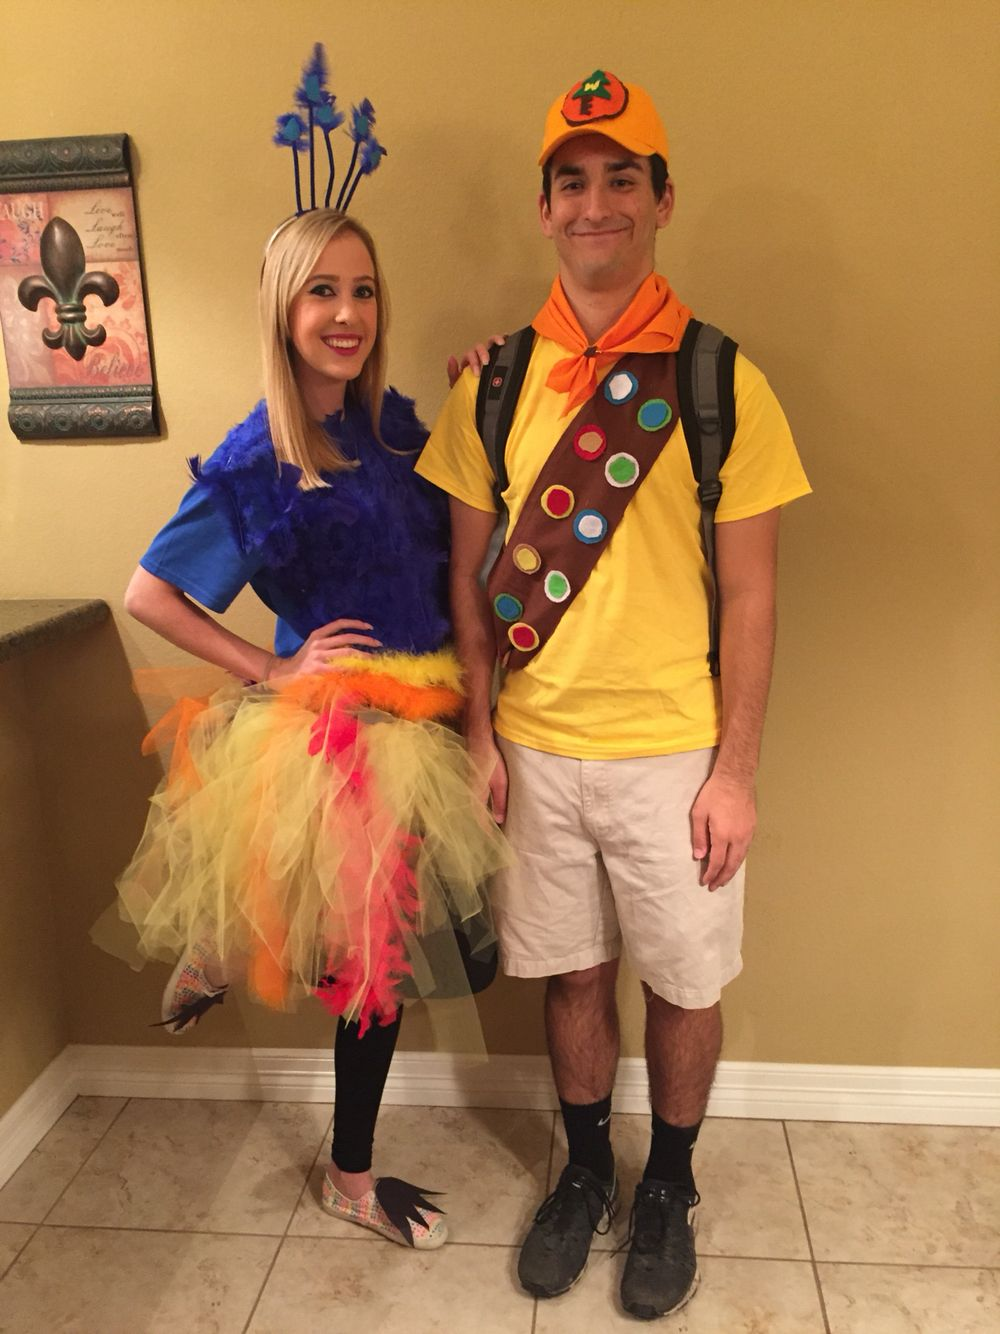 Kevin and Russell. UP costumes. #up #kevinfromup # ...